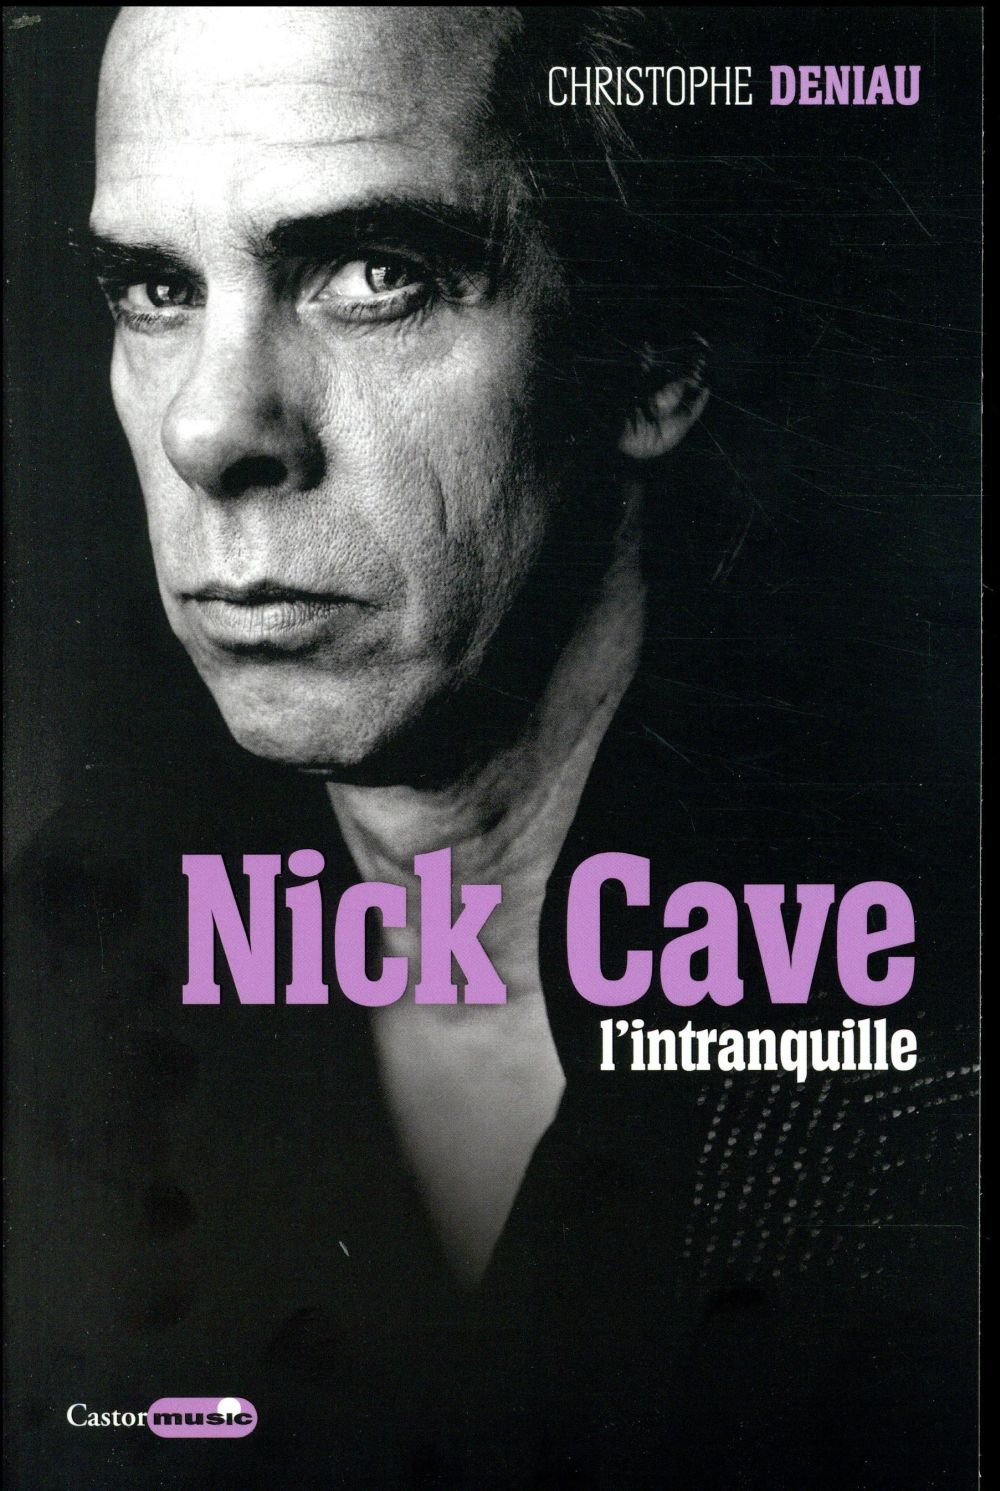 NICK CAVE - L'INTRANQUILLE DENIAU/CHRISTOPHE CASTOR ASTRAL